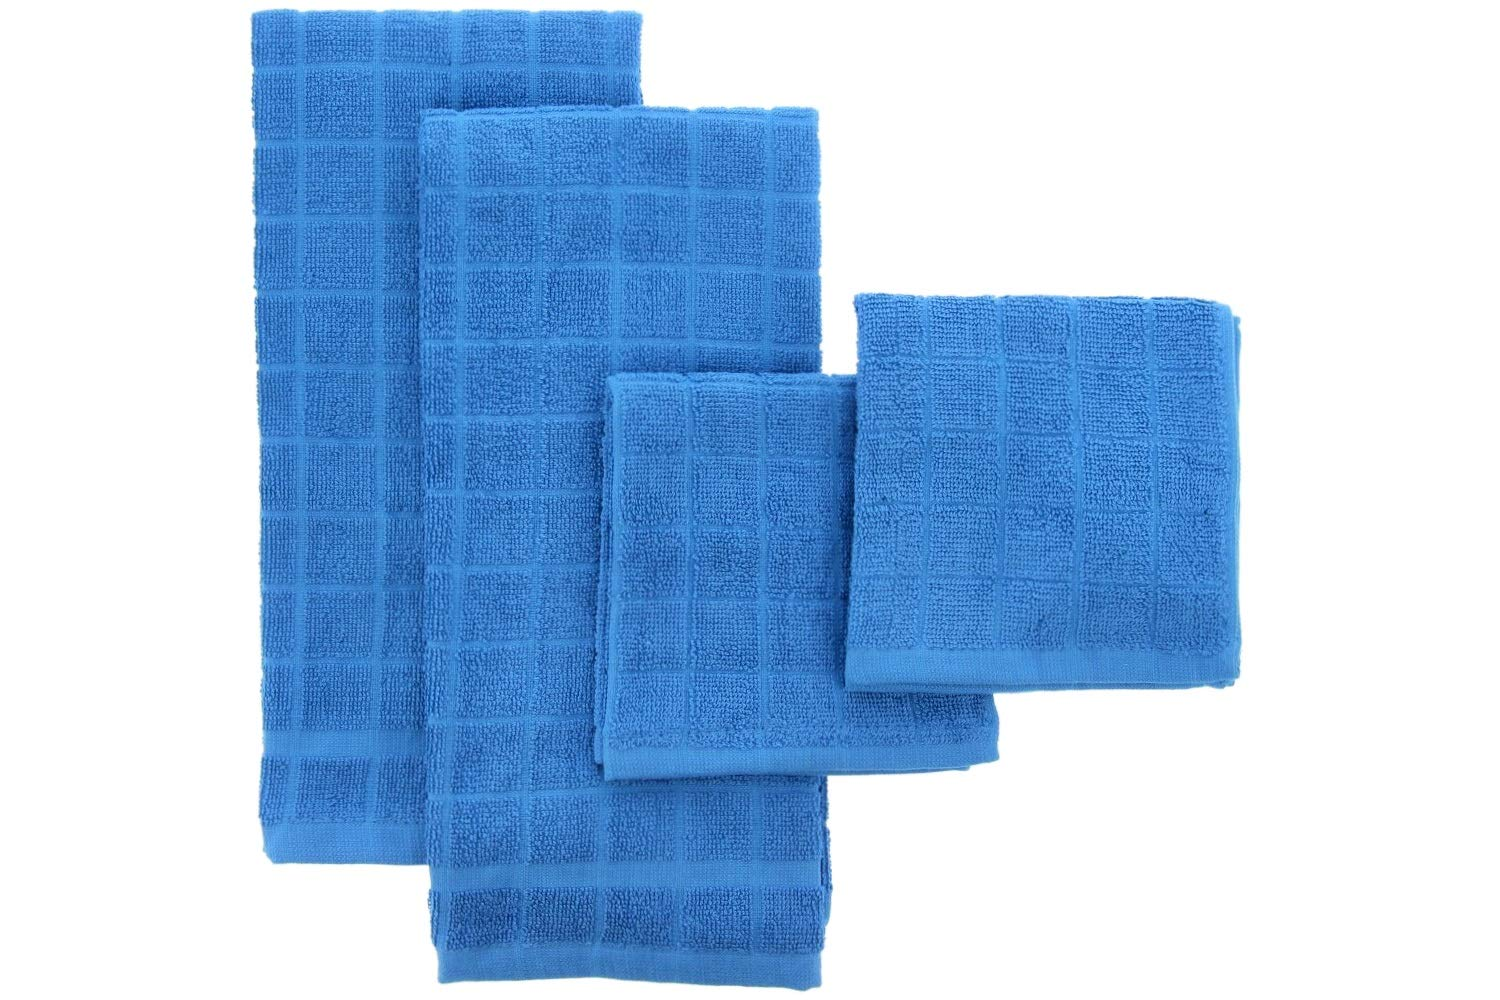 THE FIREFLY COLLECTION Bamboo Kitchen and Dish Towels, A Matching Towel Set 4 Pack, Windowpane Check – Ultra Absorbent, Anti-Microbial, Stylish, Practical – Use for Wiping, Cleaning, Drying